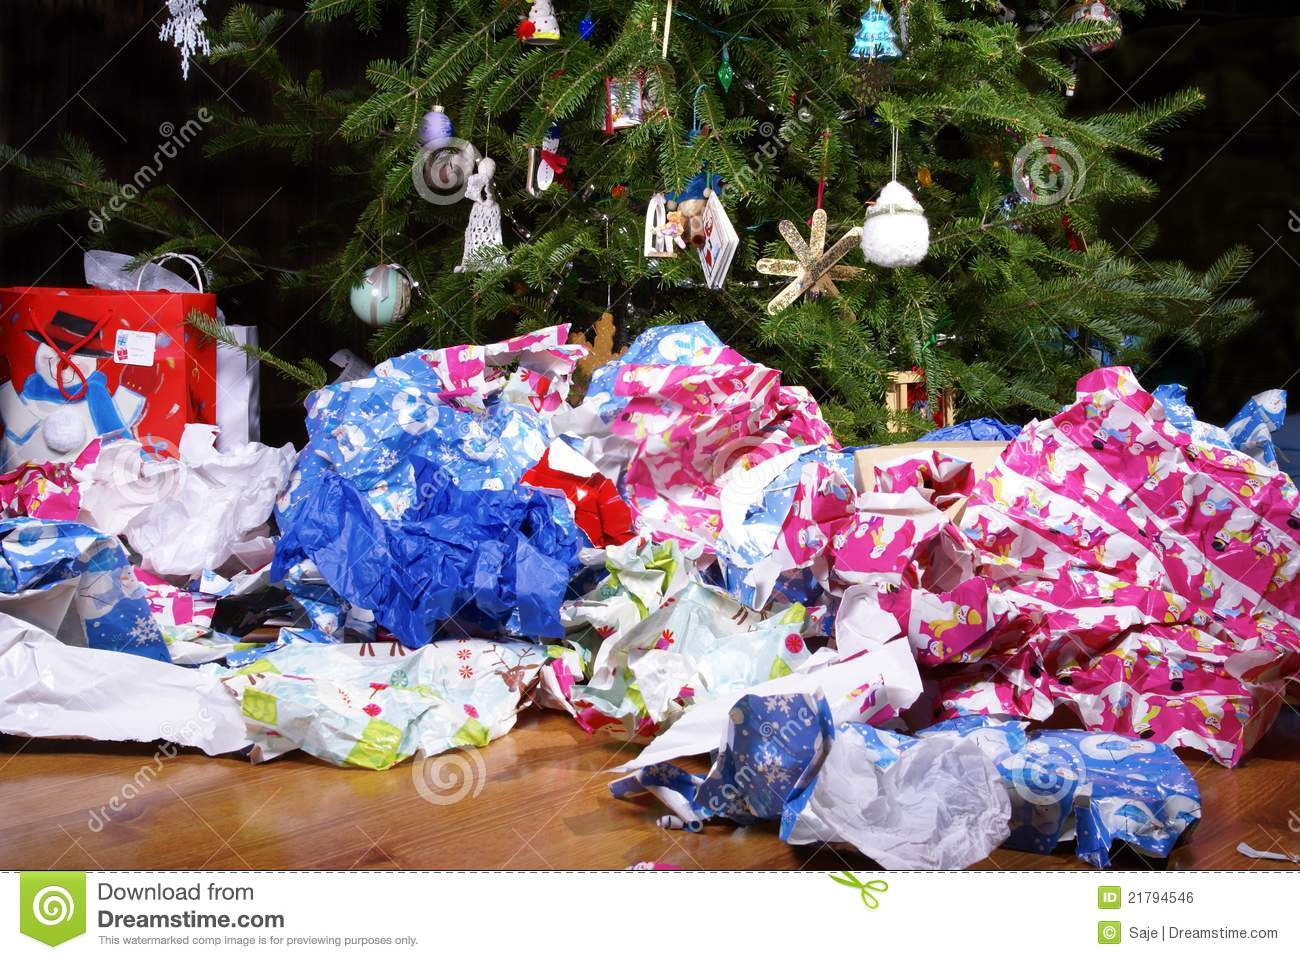 After Christmas Mess Landscape Stock Photo Image of